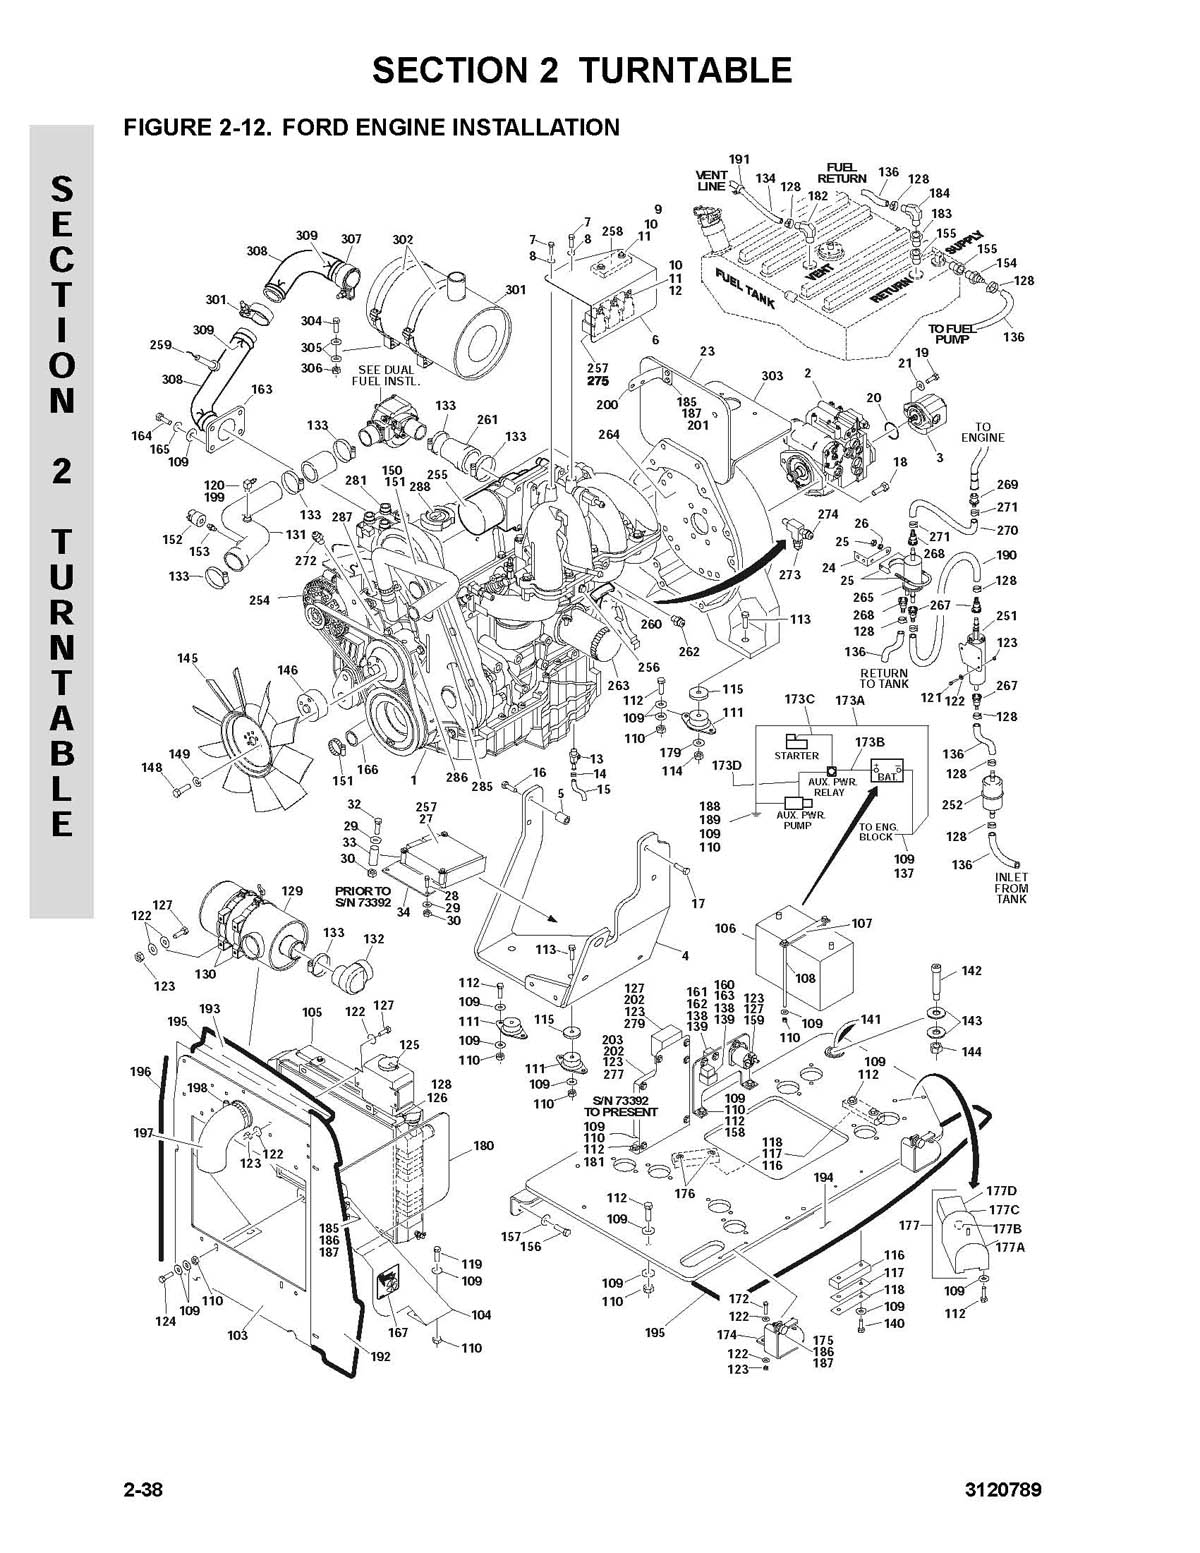 Sullair 185 Wiring Diagram on miller engine